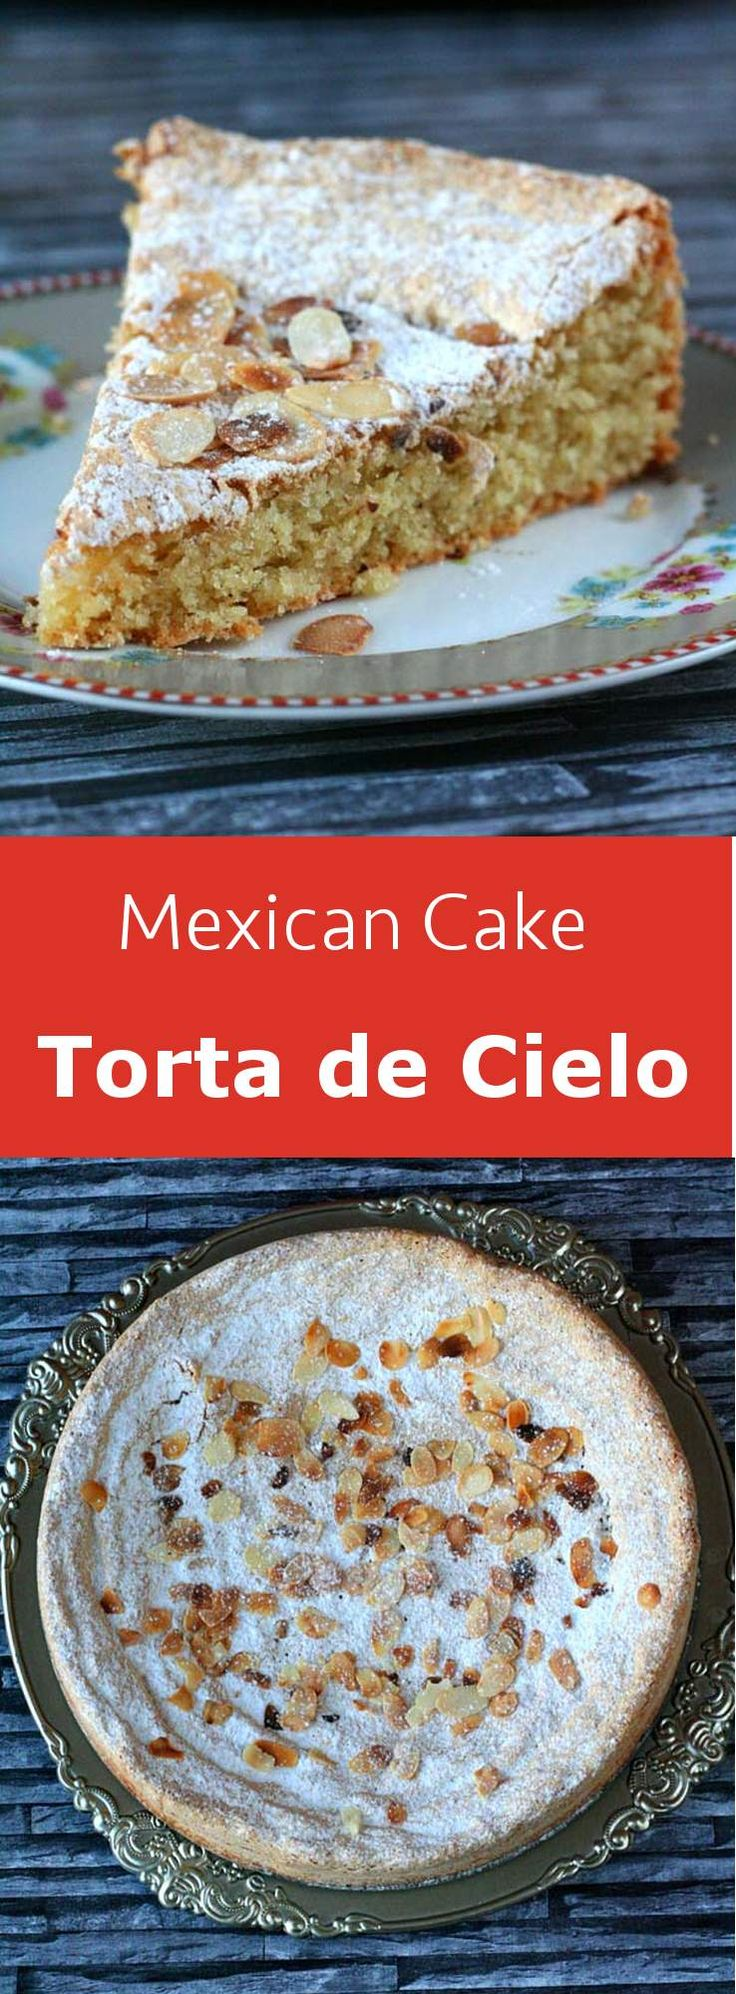 Torta de cielo is a particularly light almond flavored Mexican cake that is very…